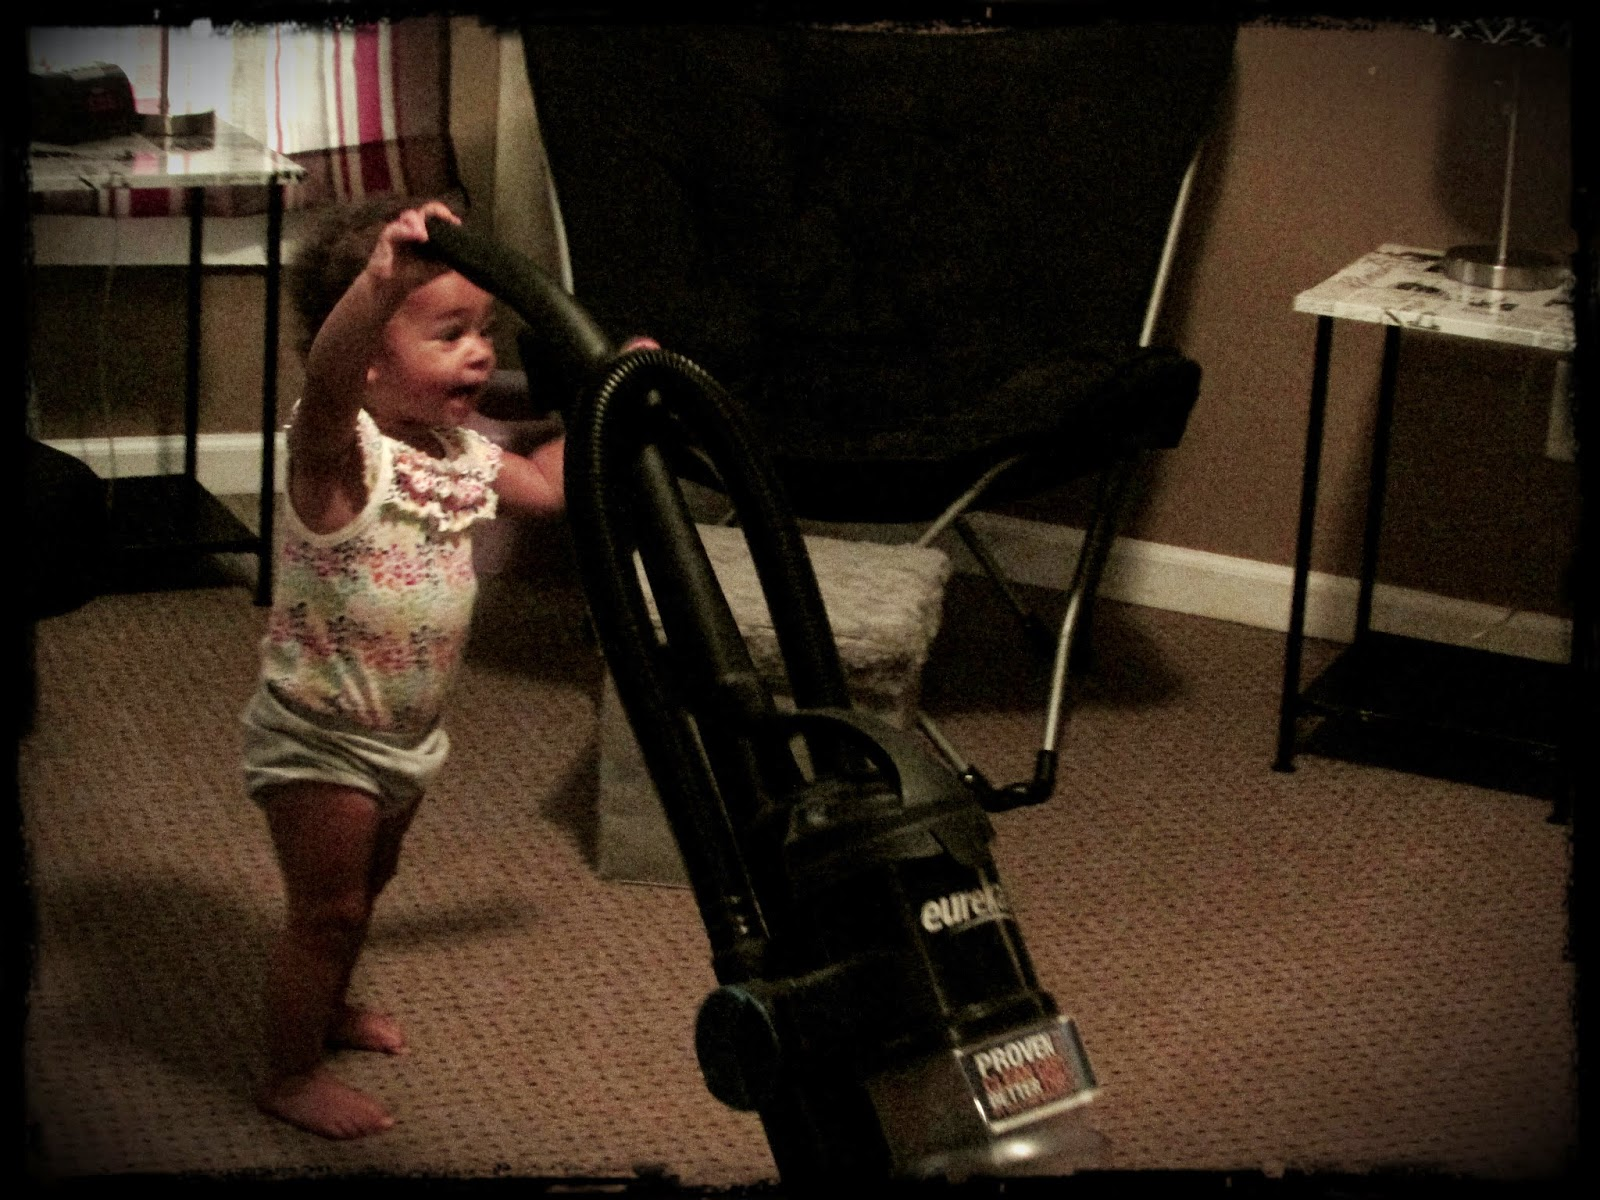 Vacuuming isn't really Miss Fits daily routine. But...it was fun to watch her try. And it's a cute picture!